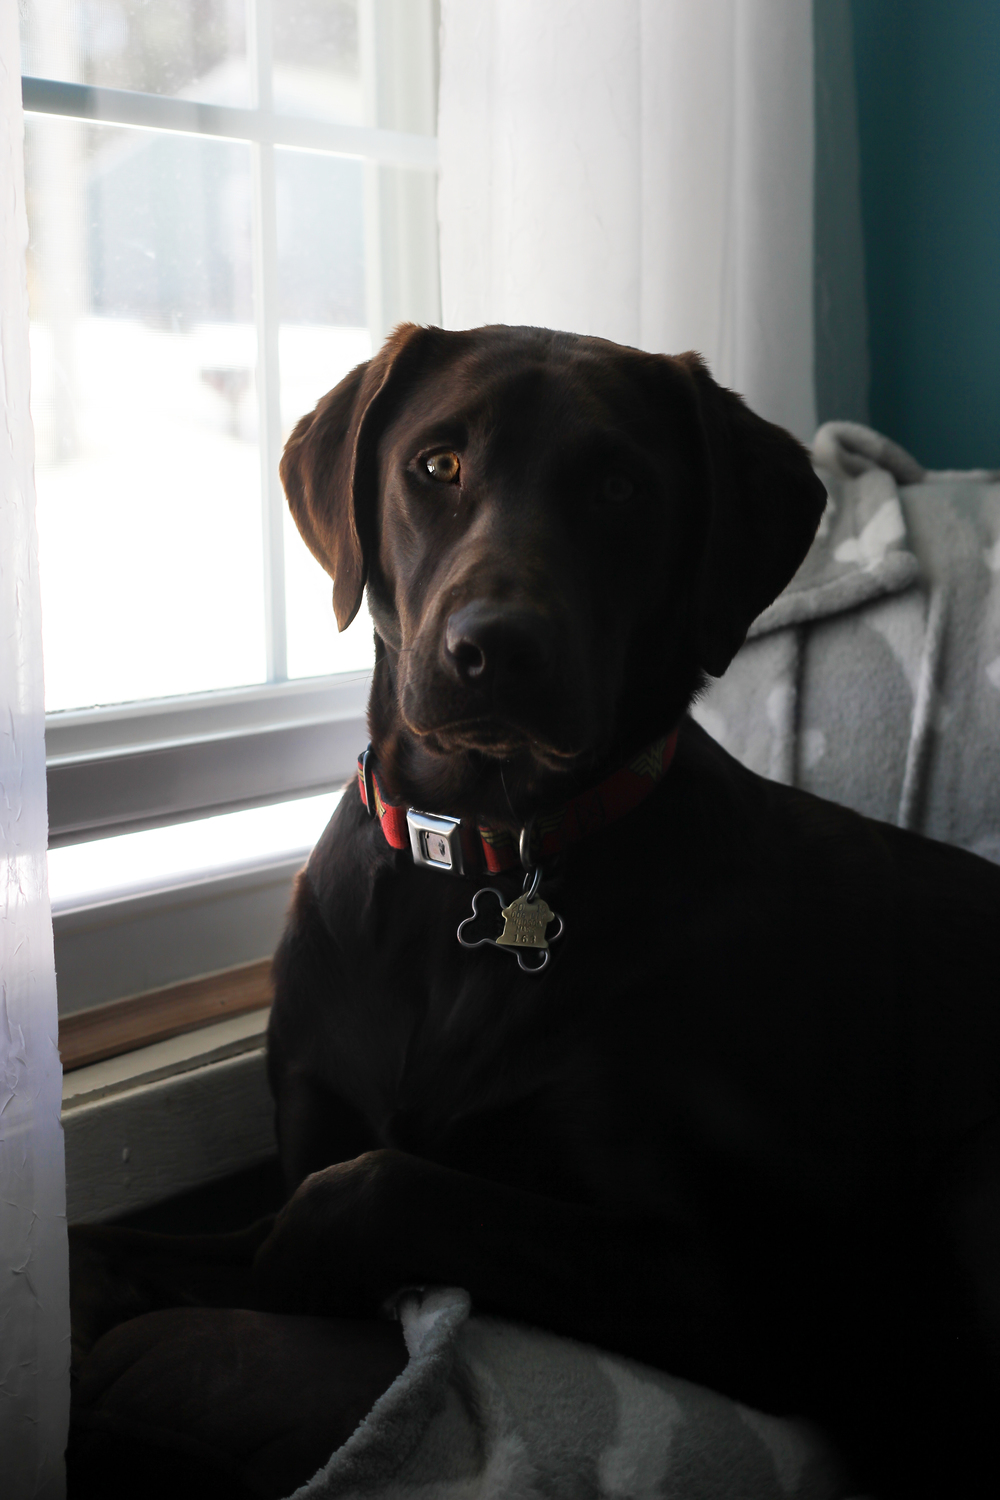 Holly, window patrolling. She very politely alerts me when cars pull up.